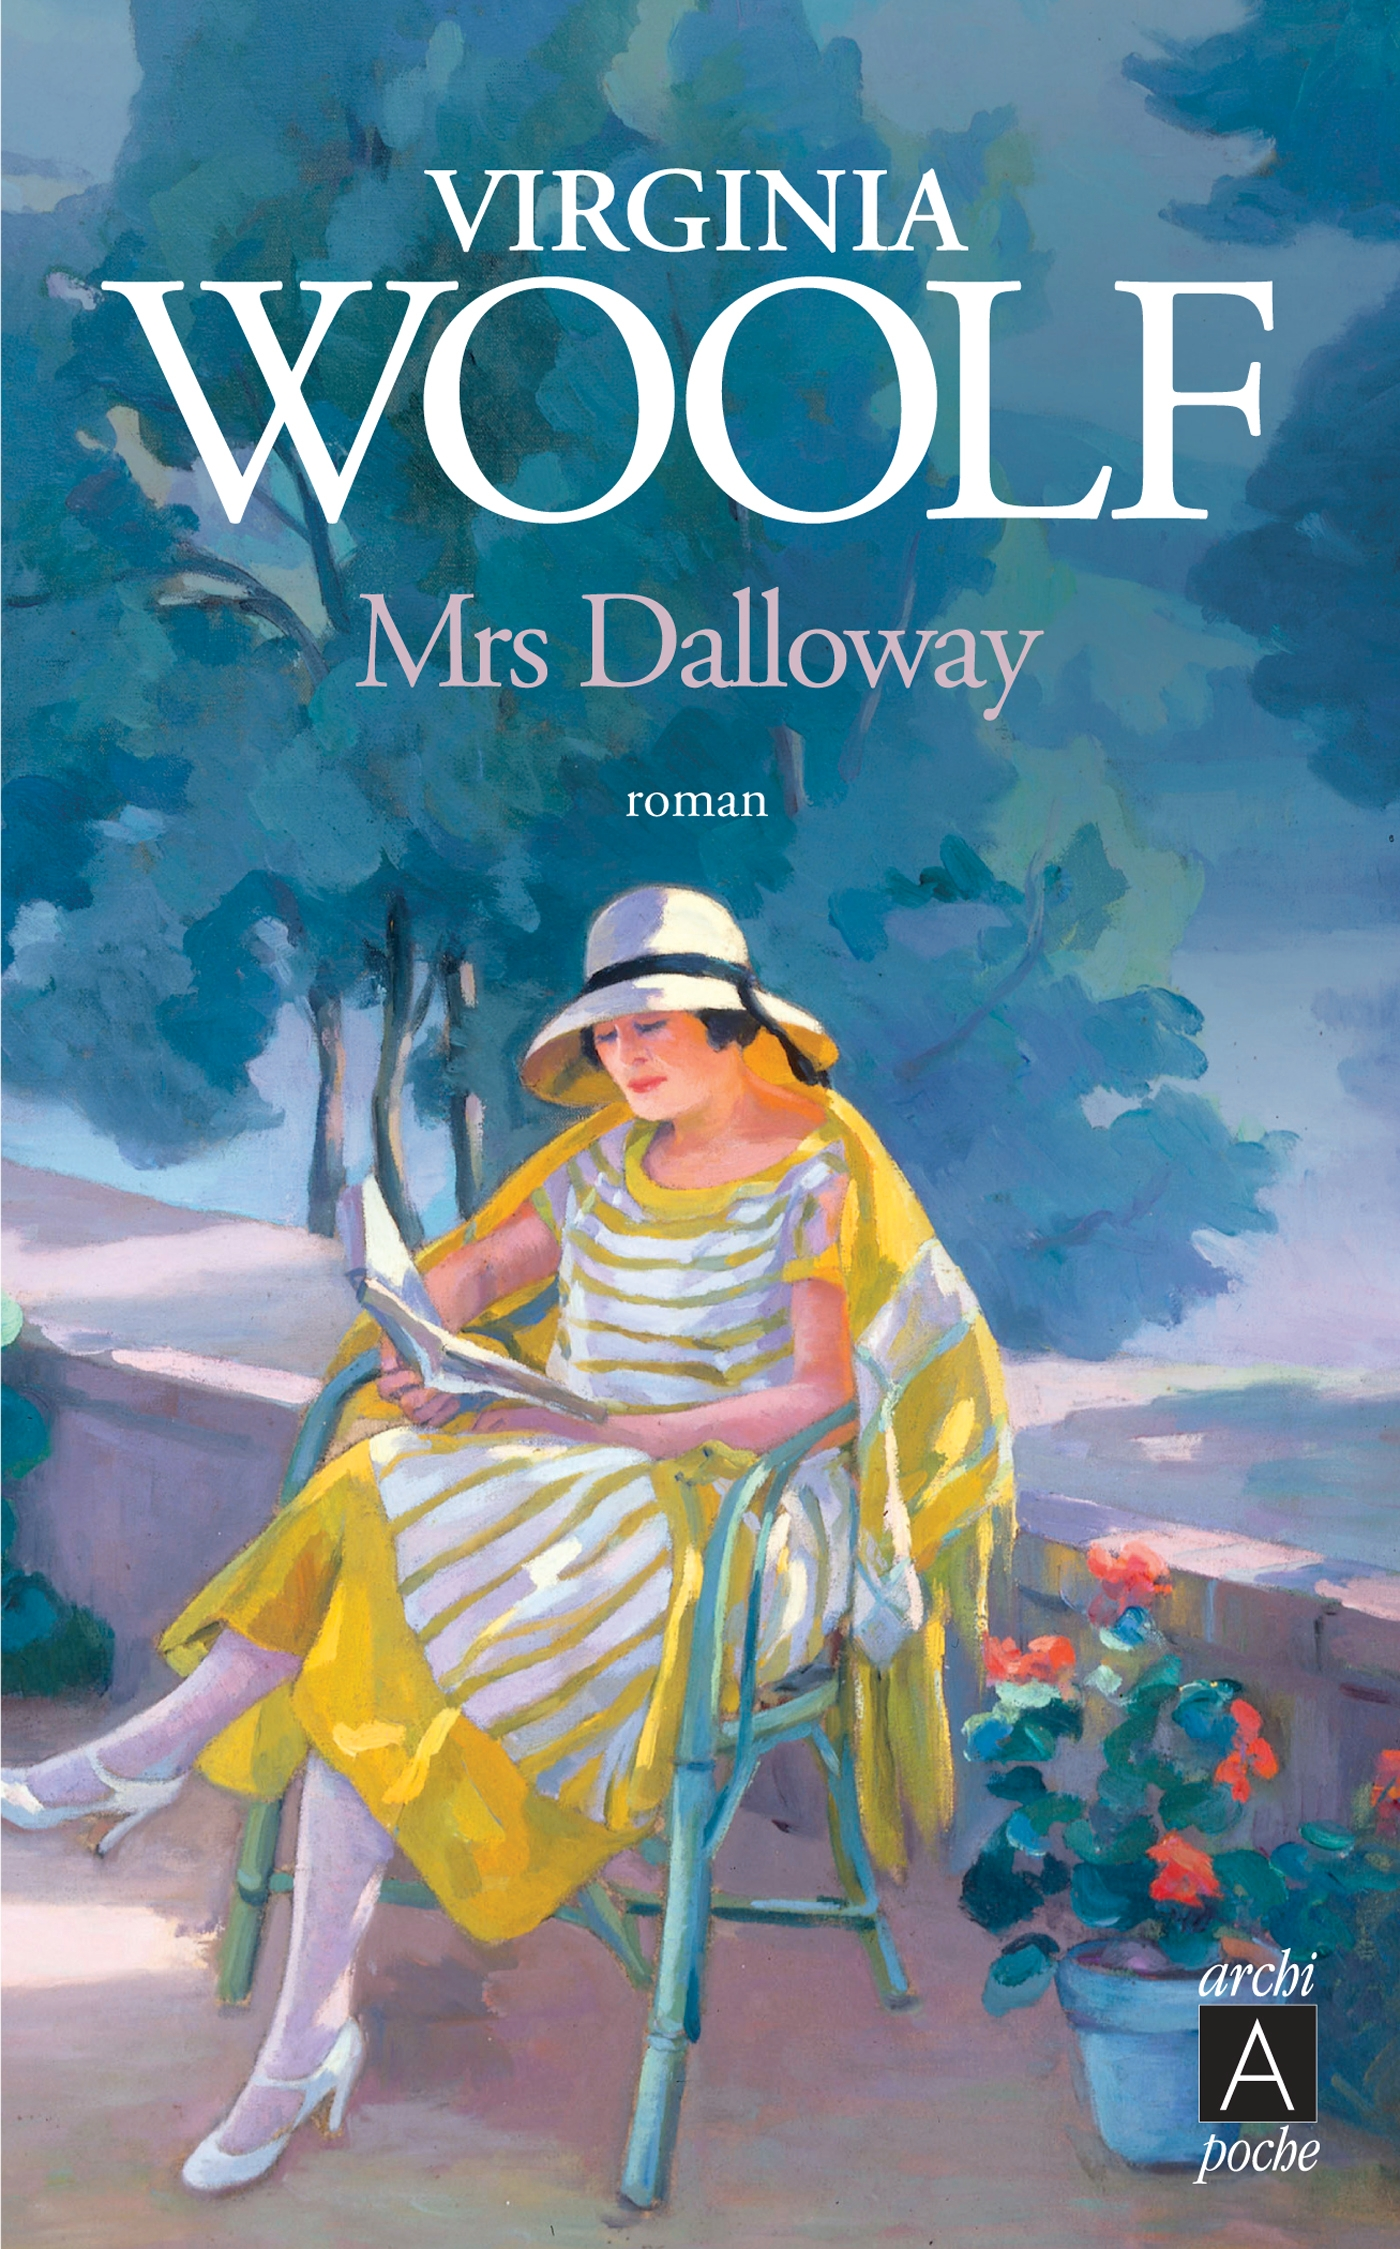 virginia woolf essay themes It is essential to understand the personality that was virginia woolf own virginia woolf english literature essay themes and implications of woolf's essay.